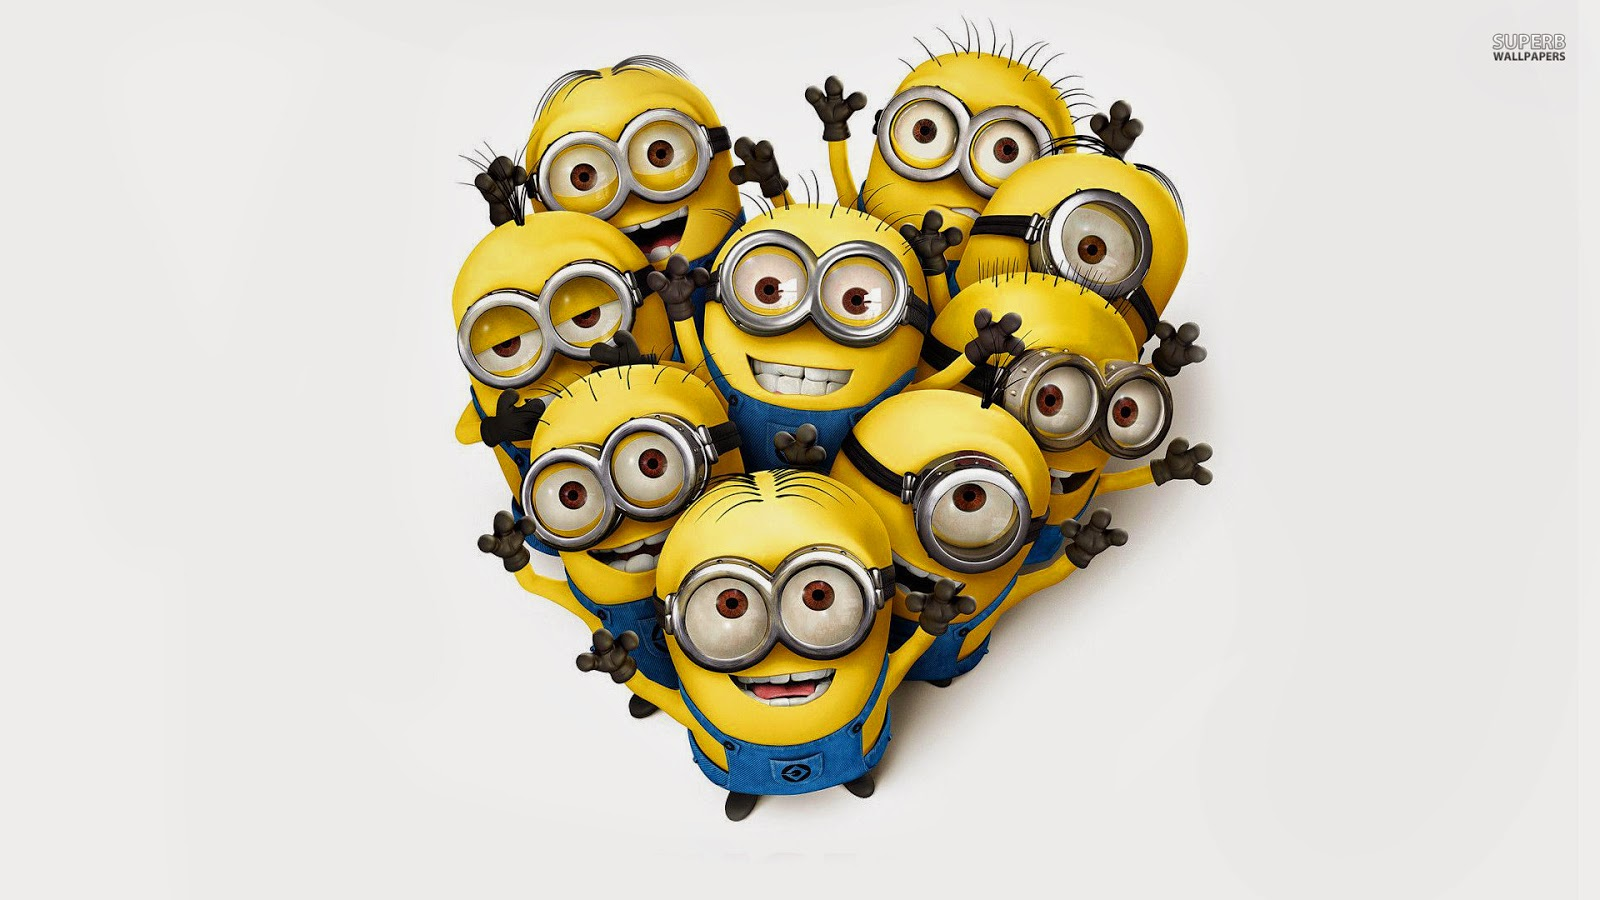 http://gallerycartoon.blogspot.com/2015/03/minions-movie-pictures-3.html